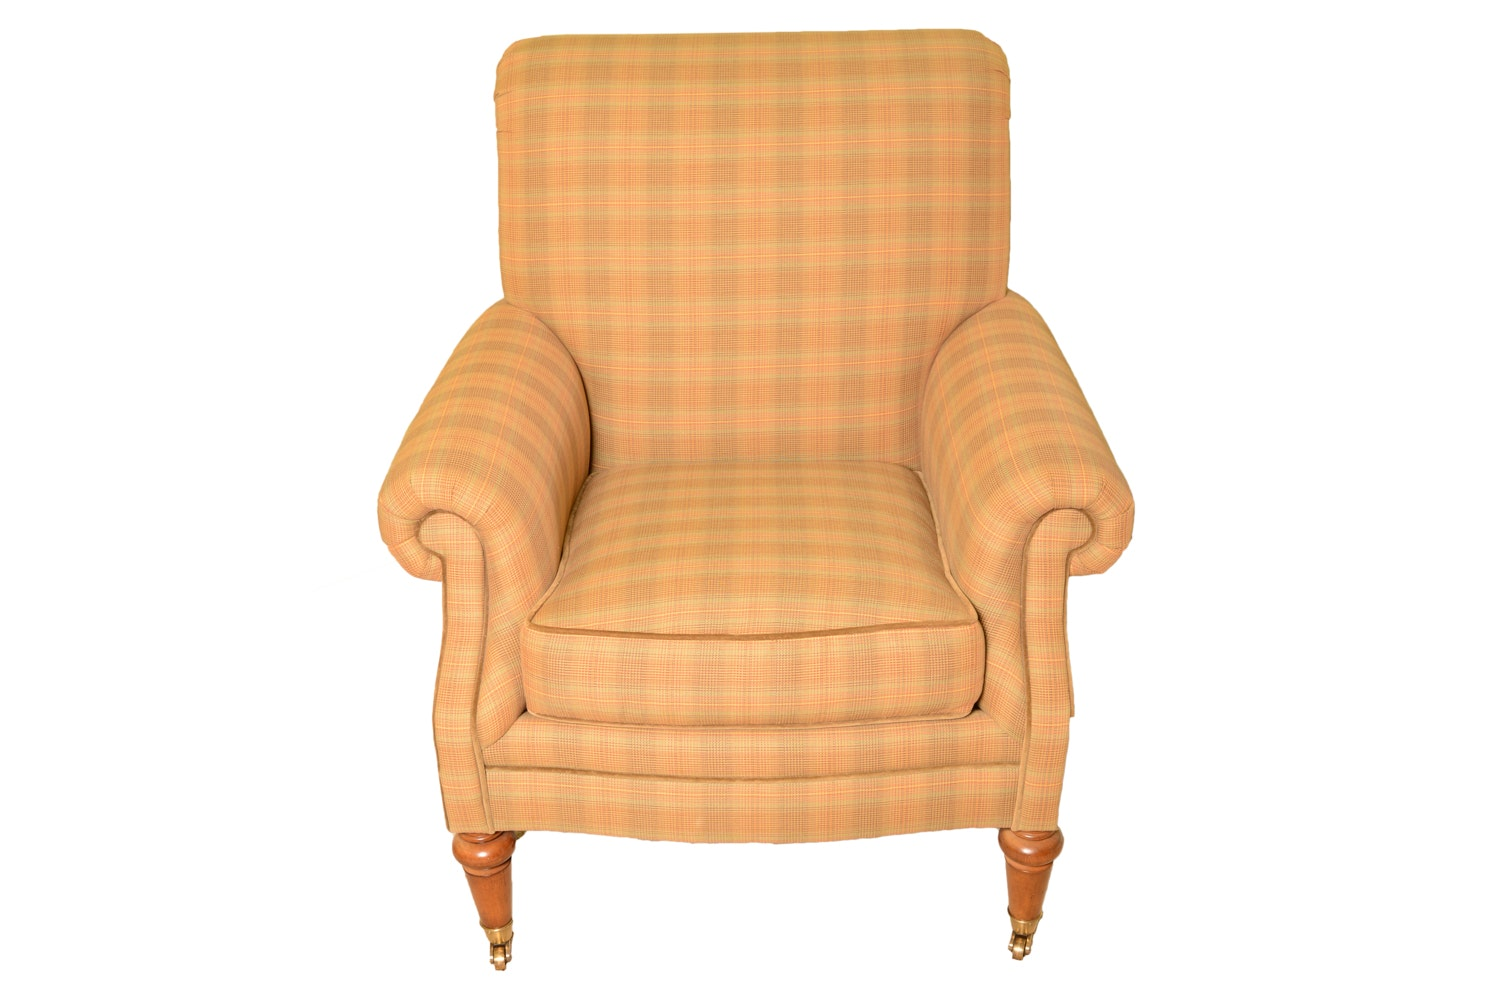 Armchair by Drexel Heritage